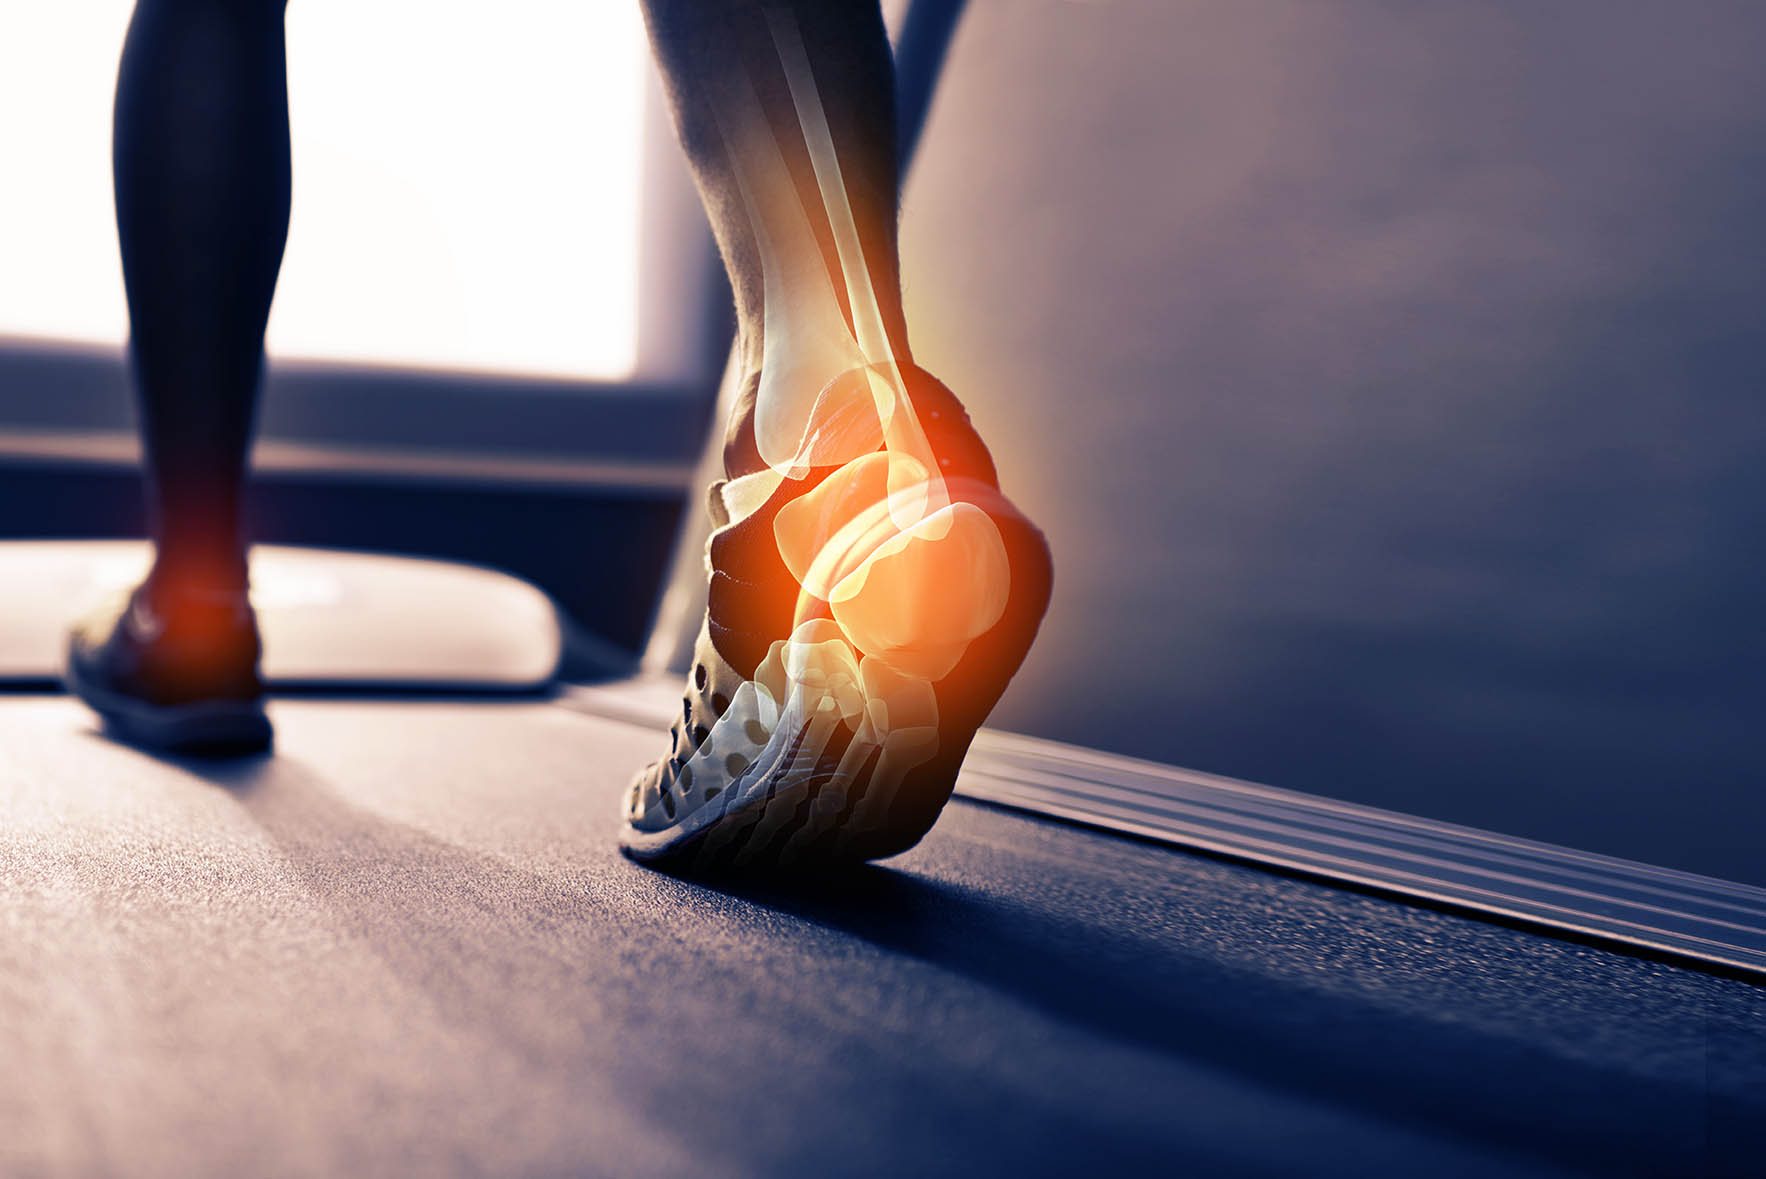 Active Spine & Sport Therapy uses hands-on treatments to successfully improve ankle and foot pain and injury.